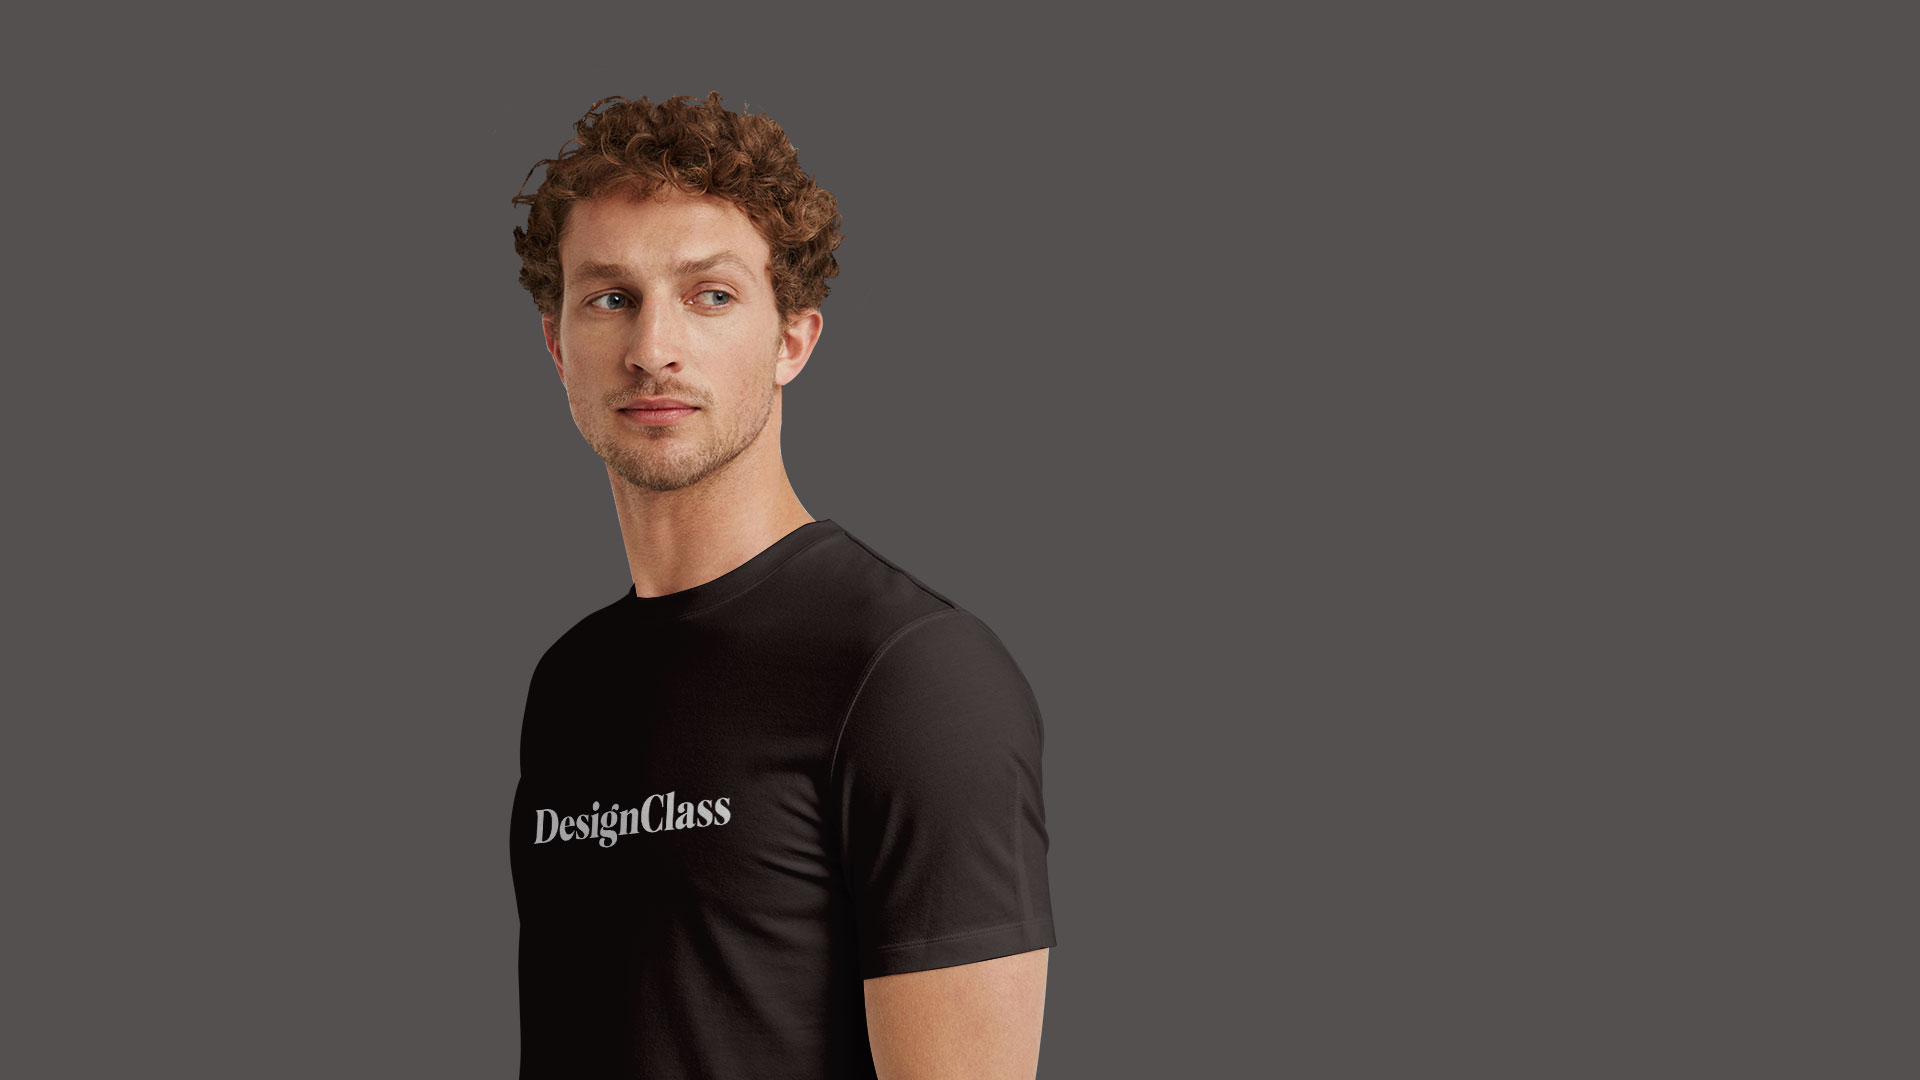 DesignClass launches limited line of merch!